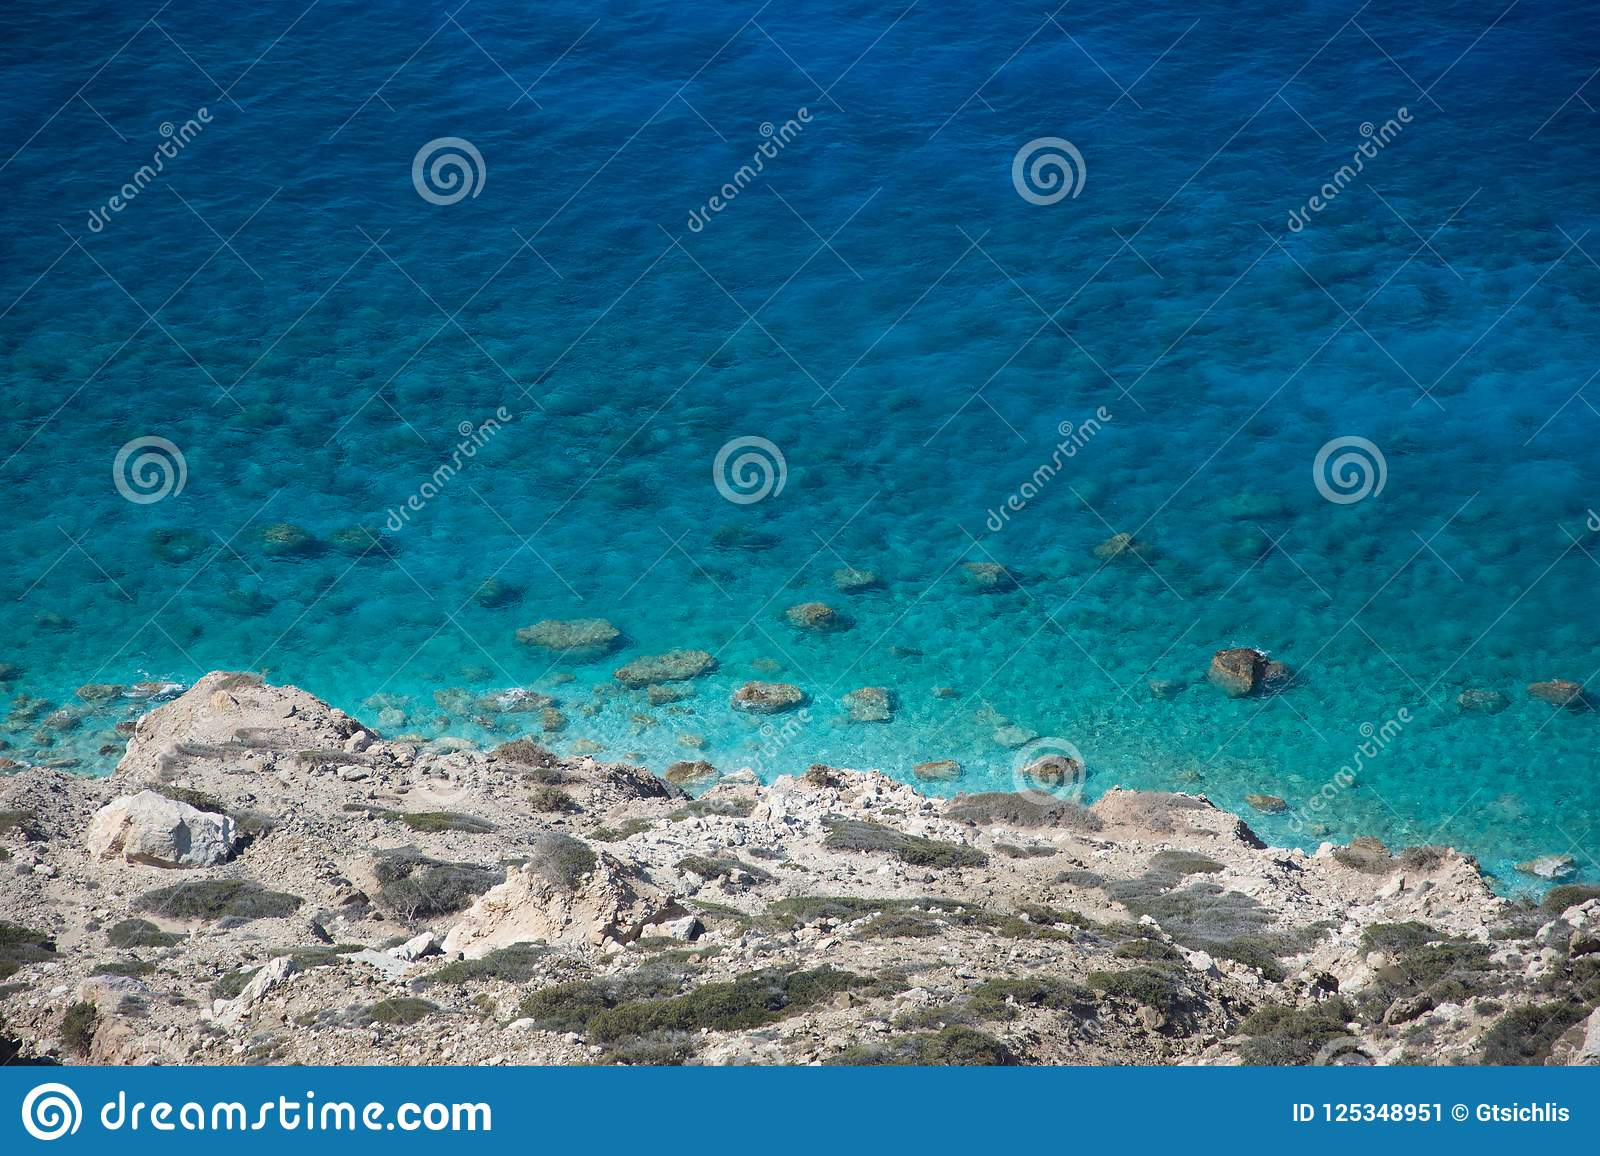 View from above of scenic coast with turquoise water, Gavdos, Greece